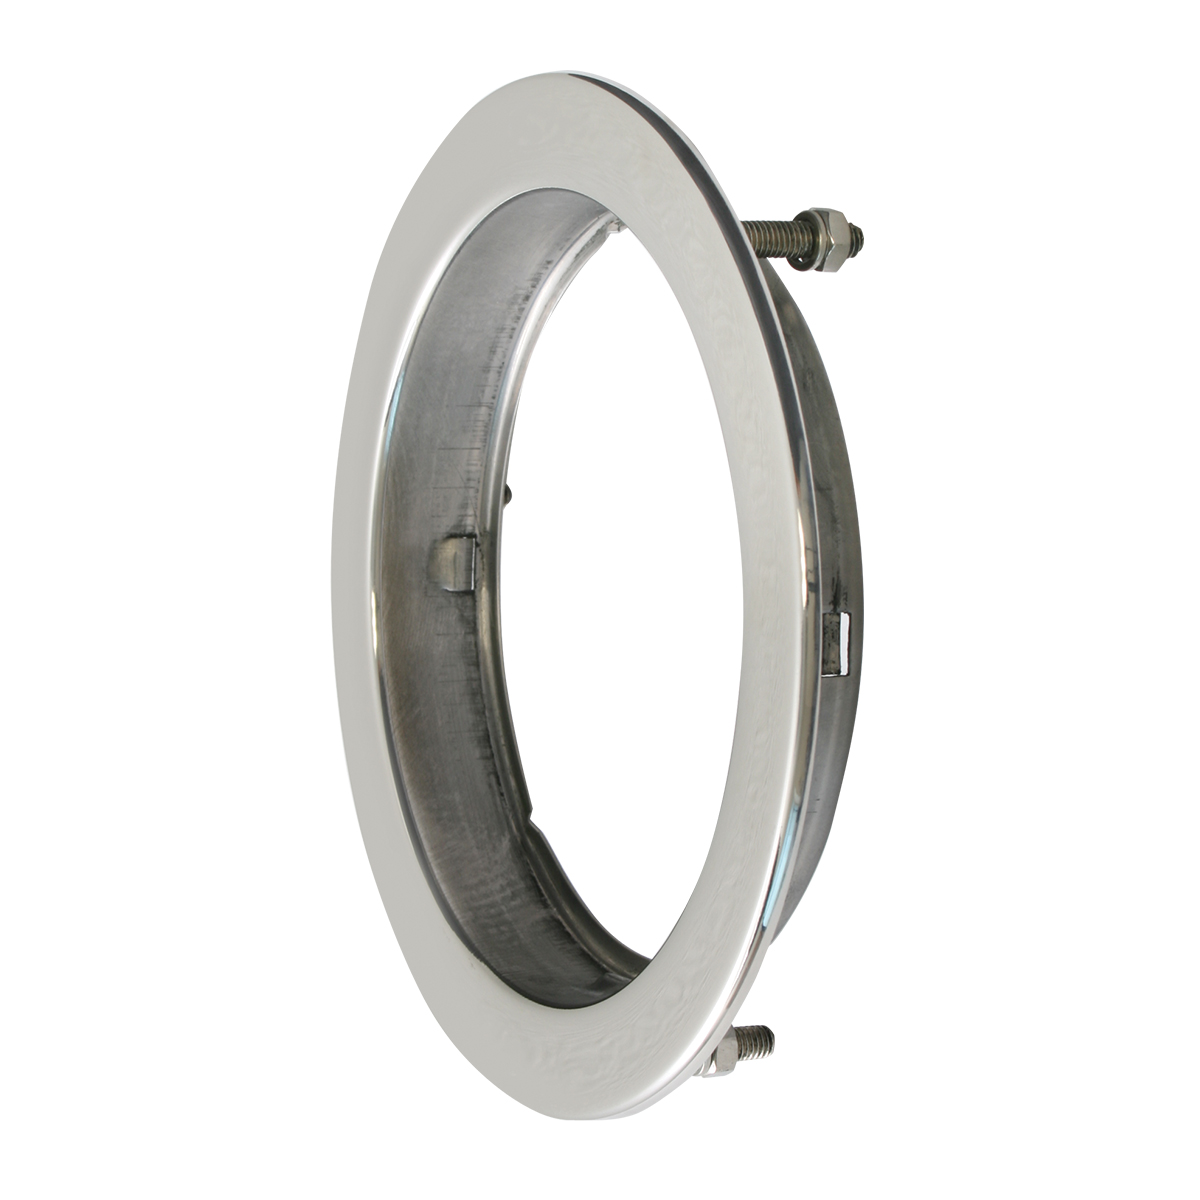 "81968 Stainless Steel Flange Mount Bezel with Hidden Studs for 4"" Round Light"